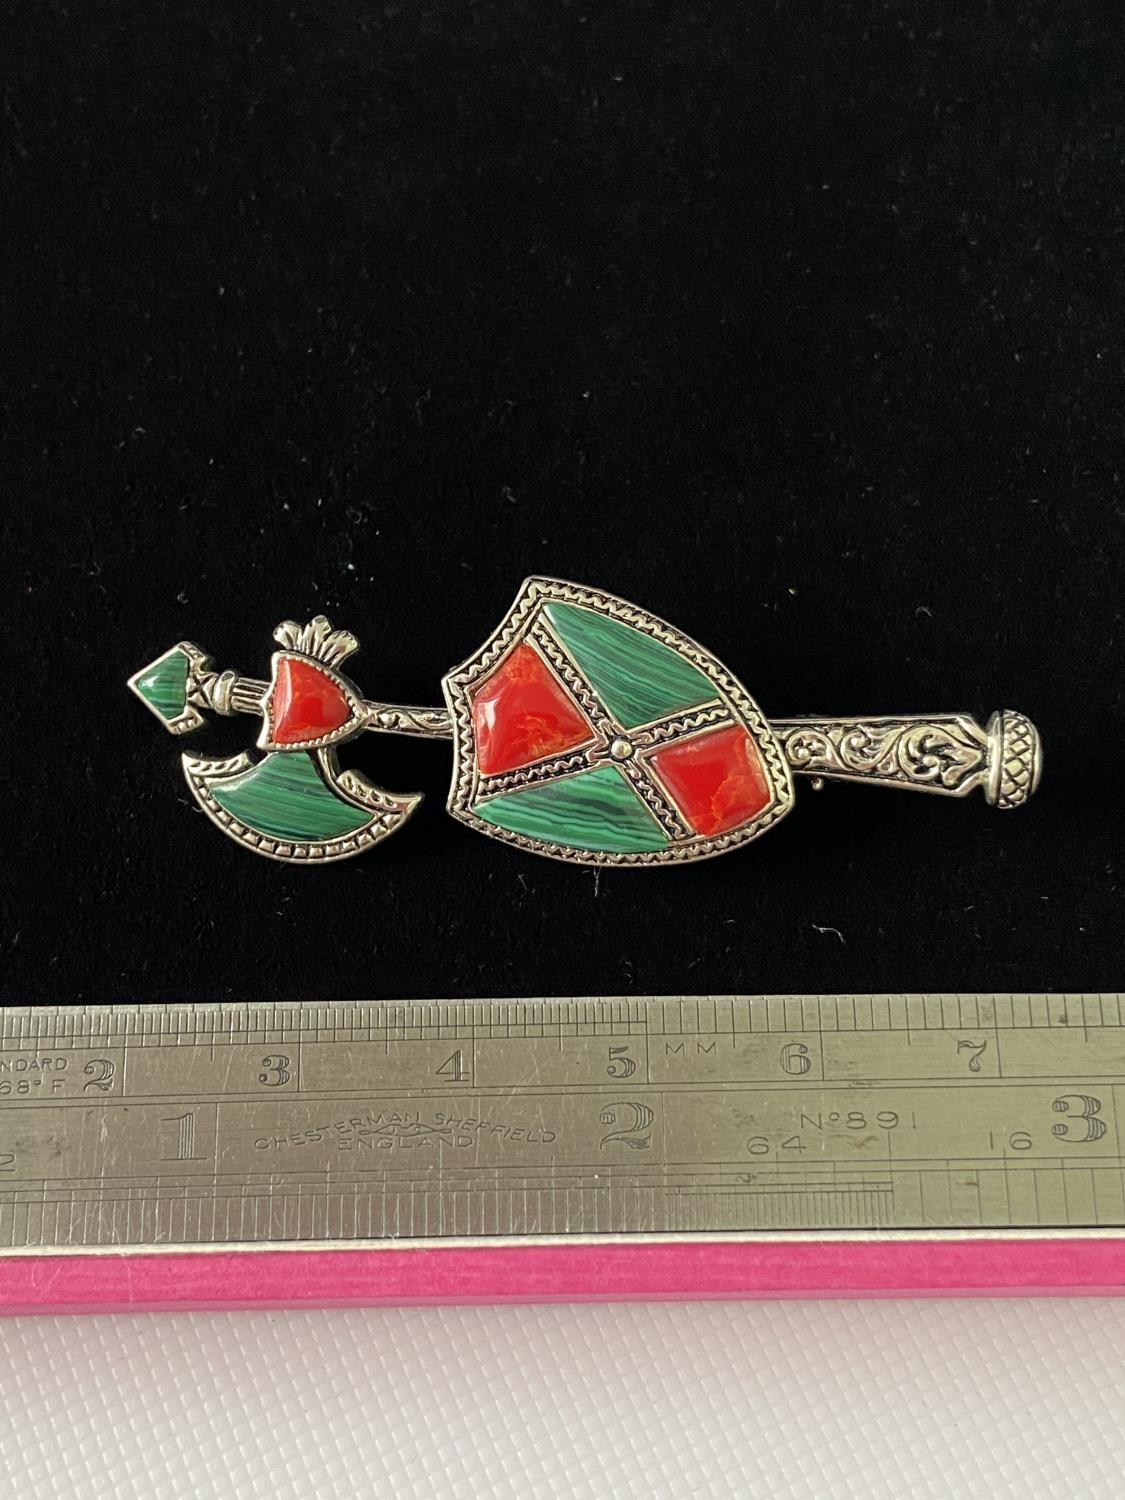 A Silver and malachite arrow shaped brooch. [5.3cm in length] - Image 4 of 6